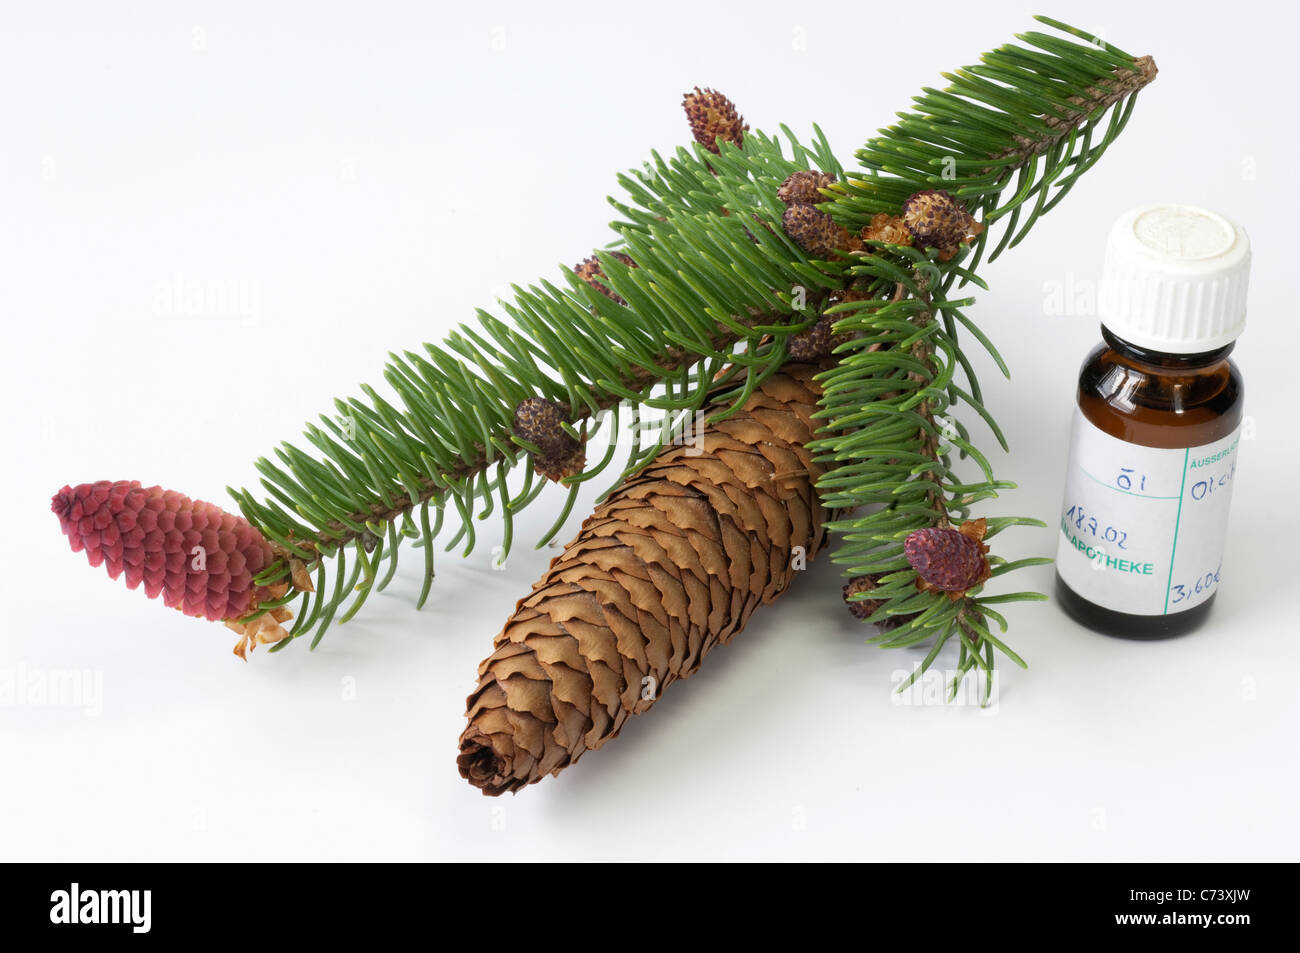 Common Spruce, Norway Spruce (Picea abies). Twig with flowers, cone and small bottle of essential oil - Stock Image